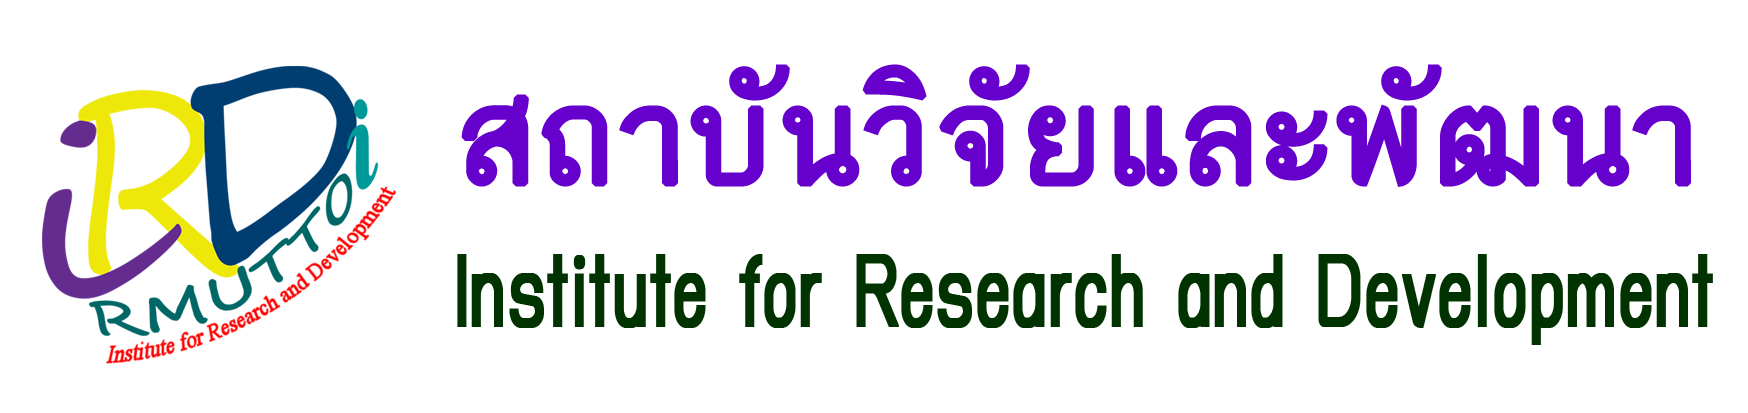 IRD - Institute of Research and Development